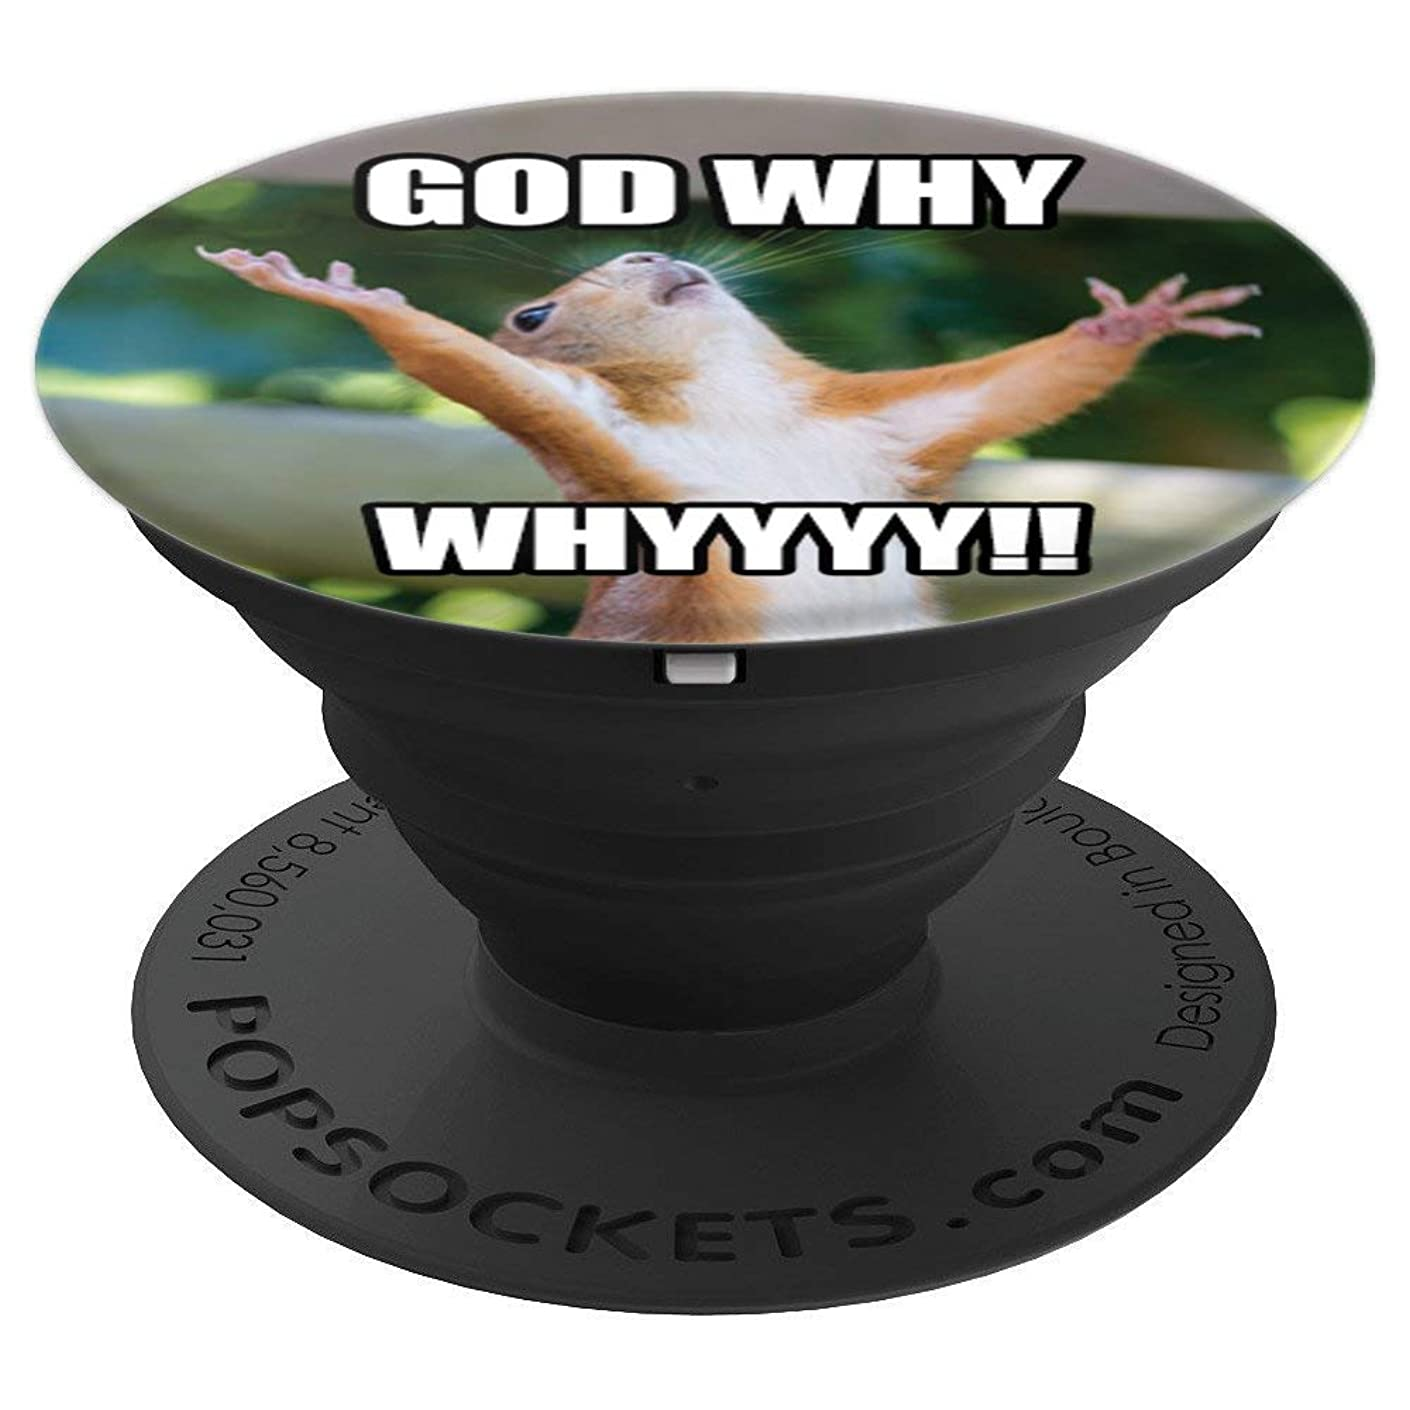 Funny 'God Why' Squirrel - Phone Mount & Holder Knob 2562 - PopSockets Grip and Stand for Phones and Tablets